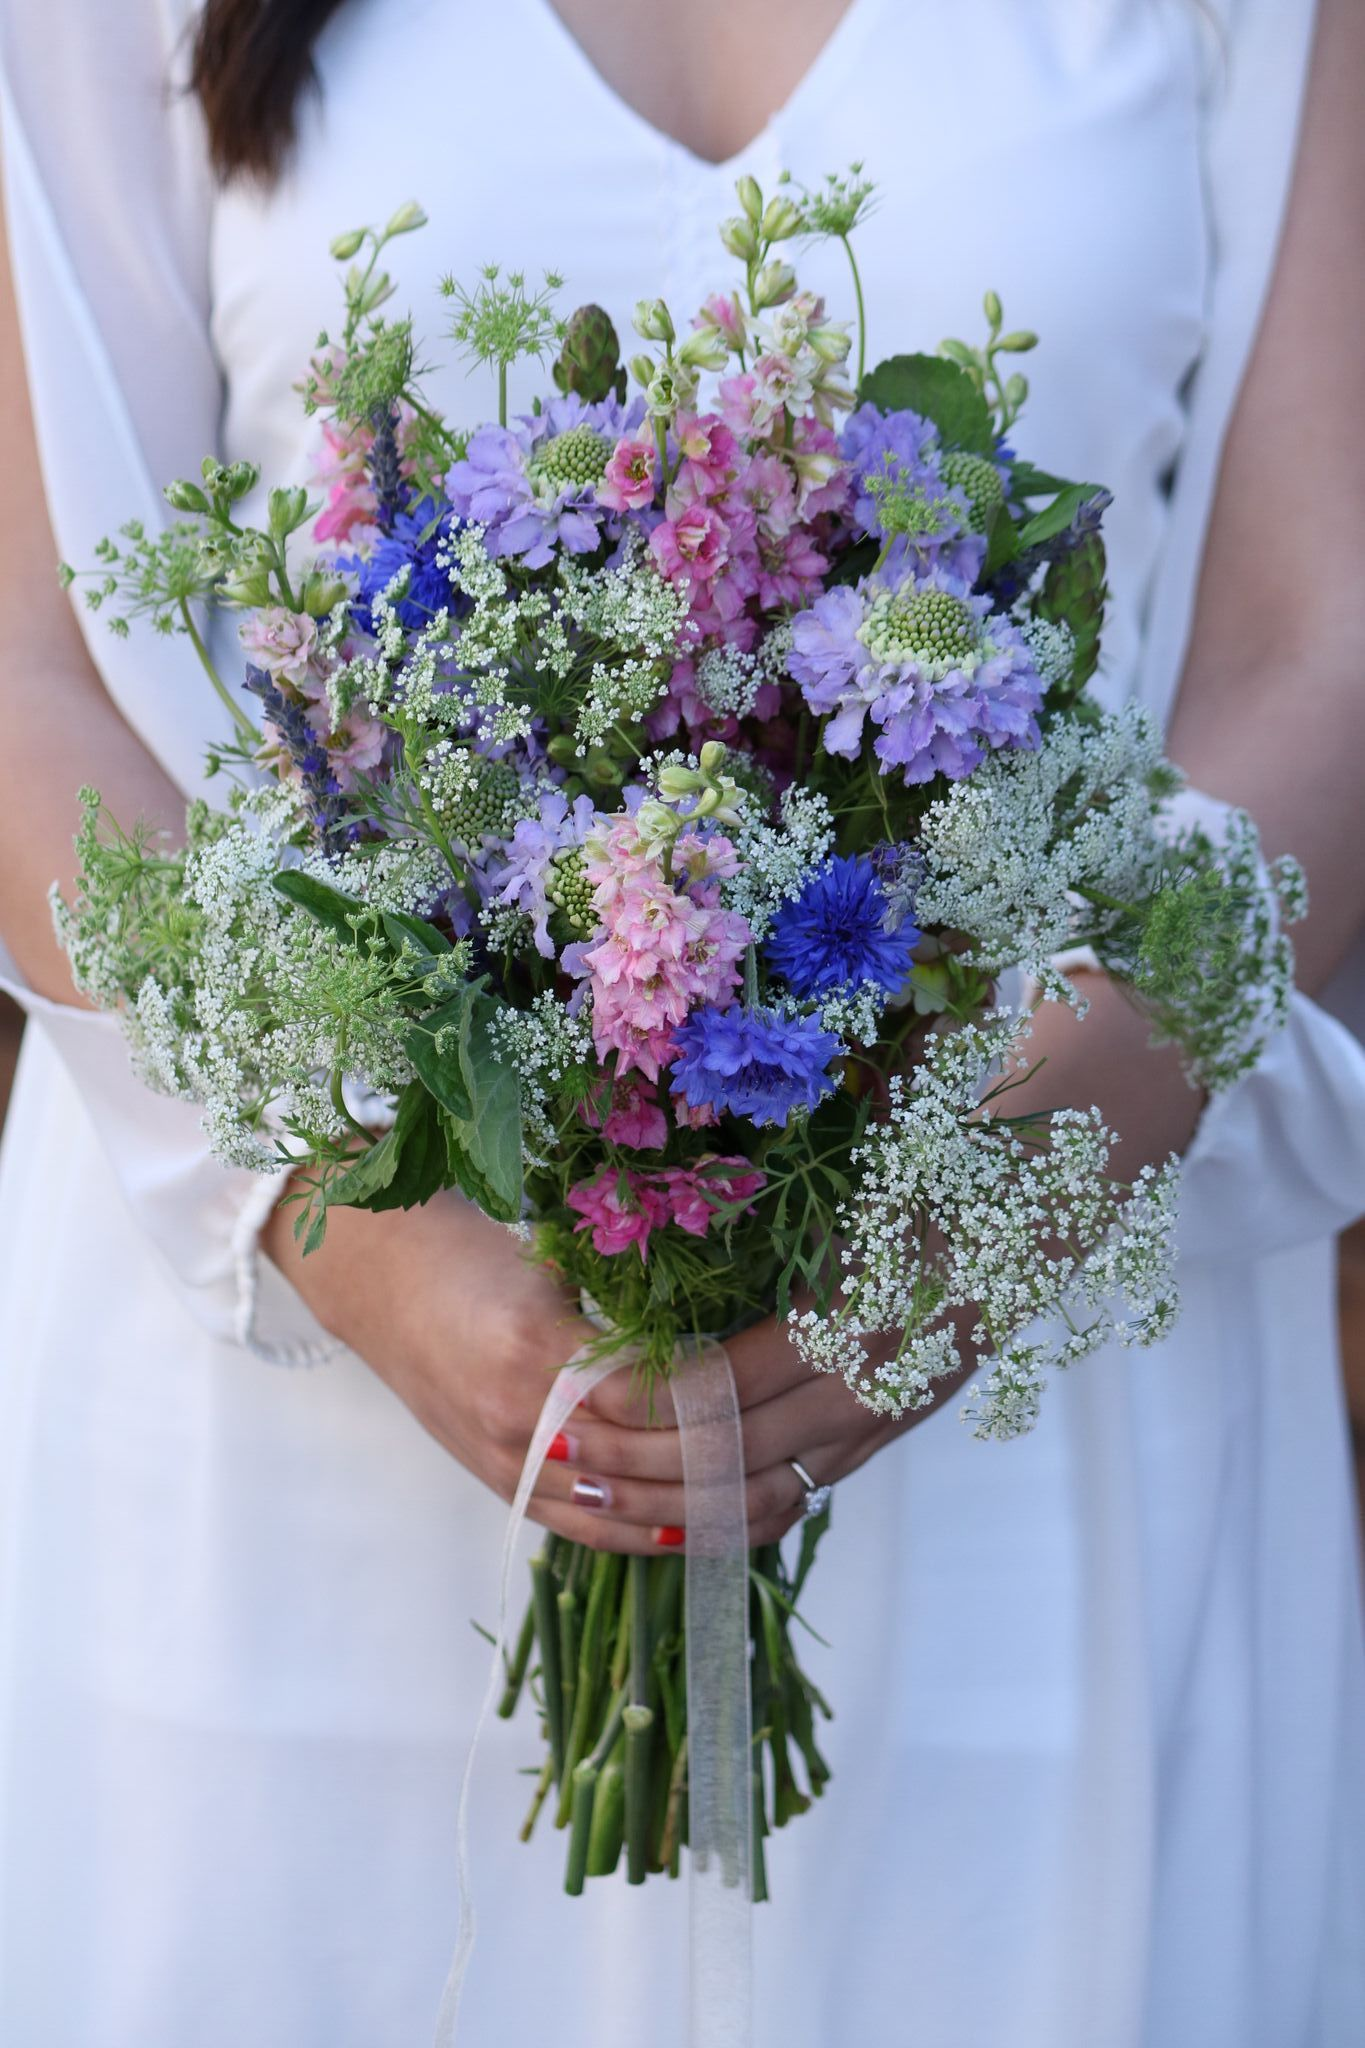 How to Make a Wildflower Bouquet in 3 Steps